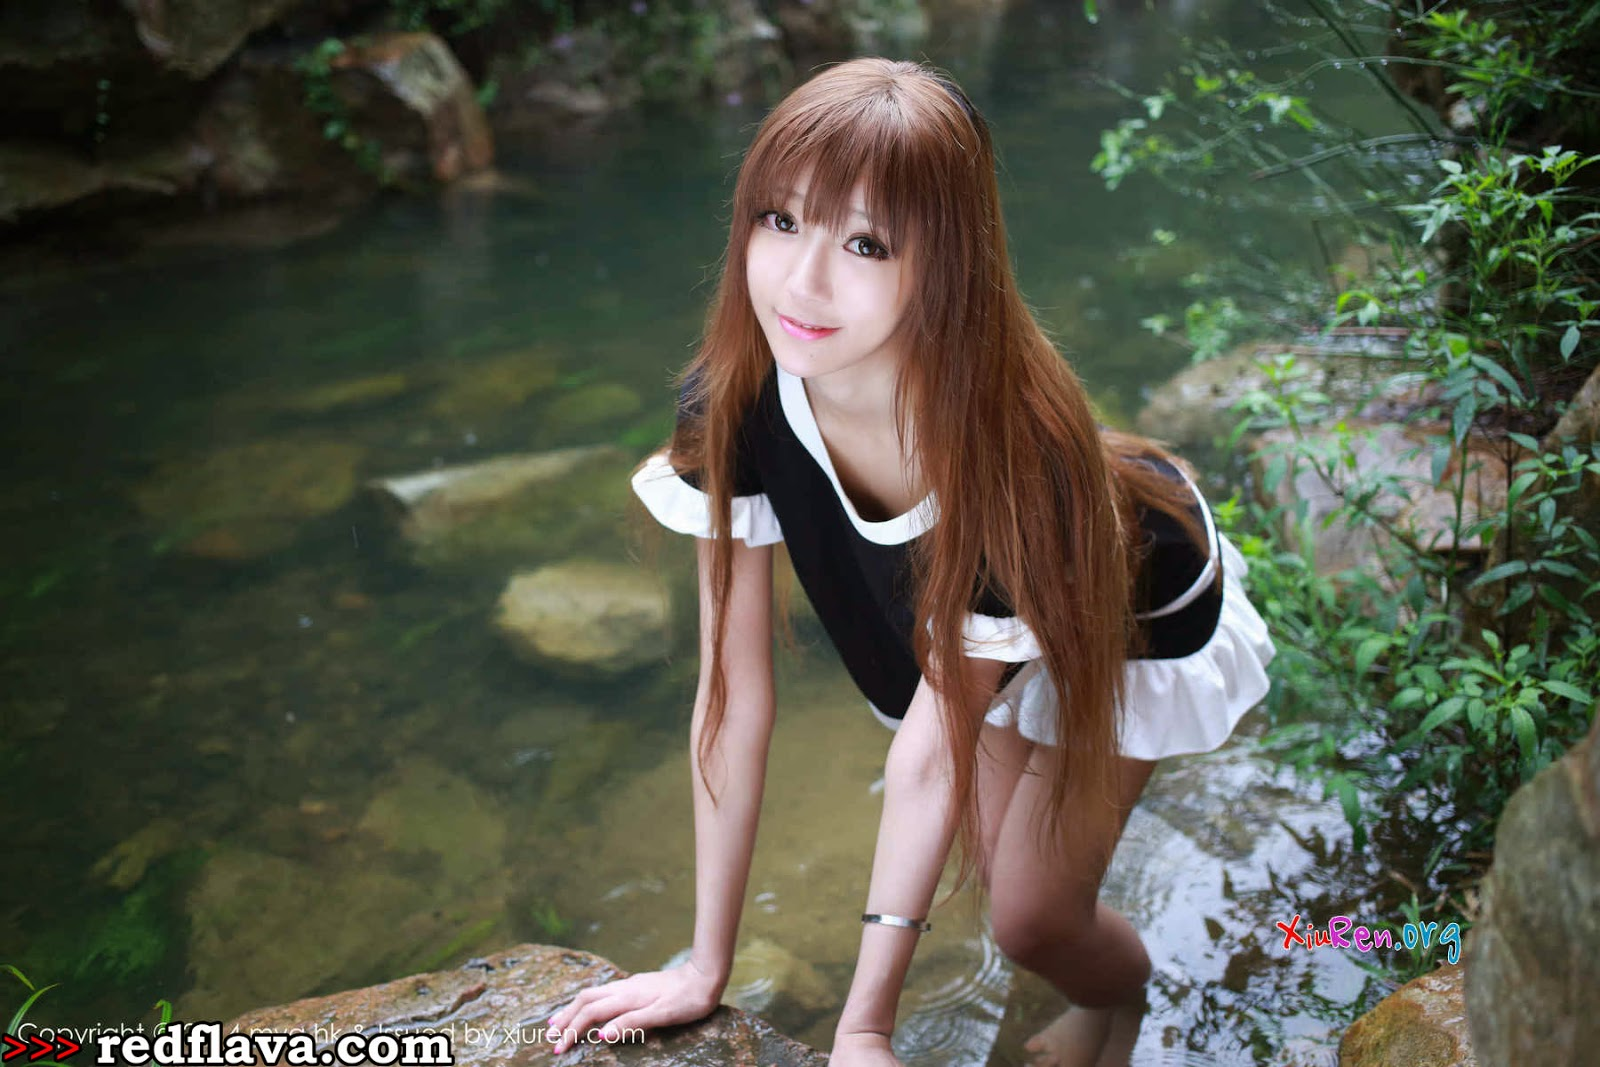 Wang Xin Yao Lovely Update Pack 3